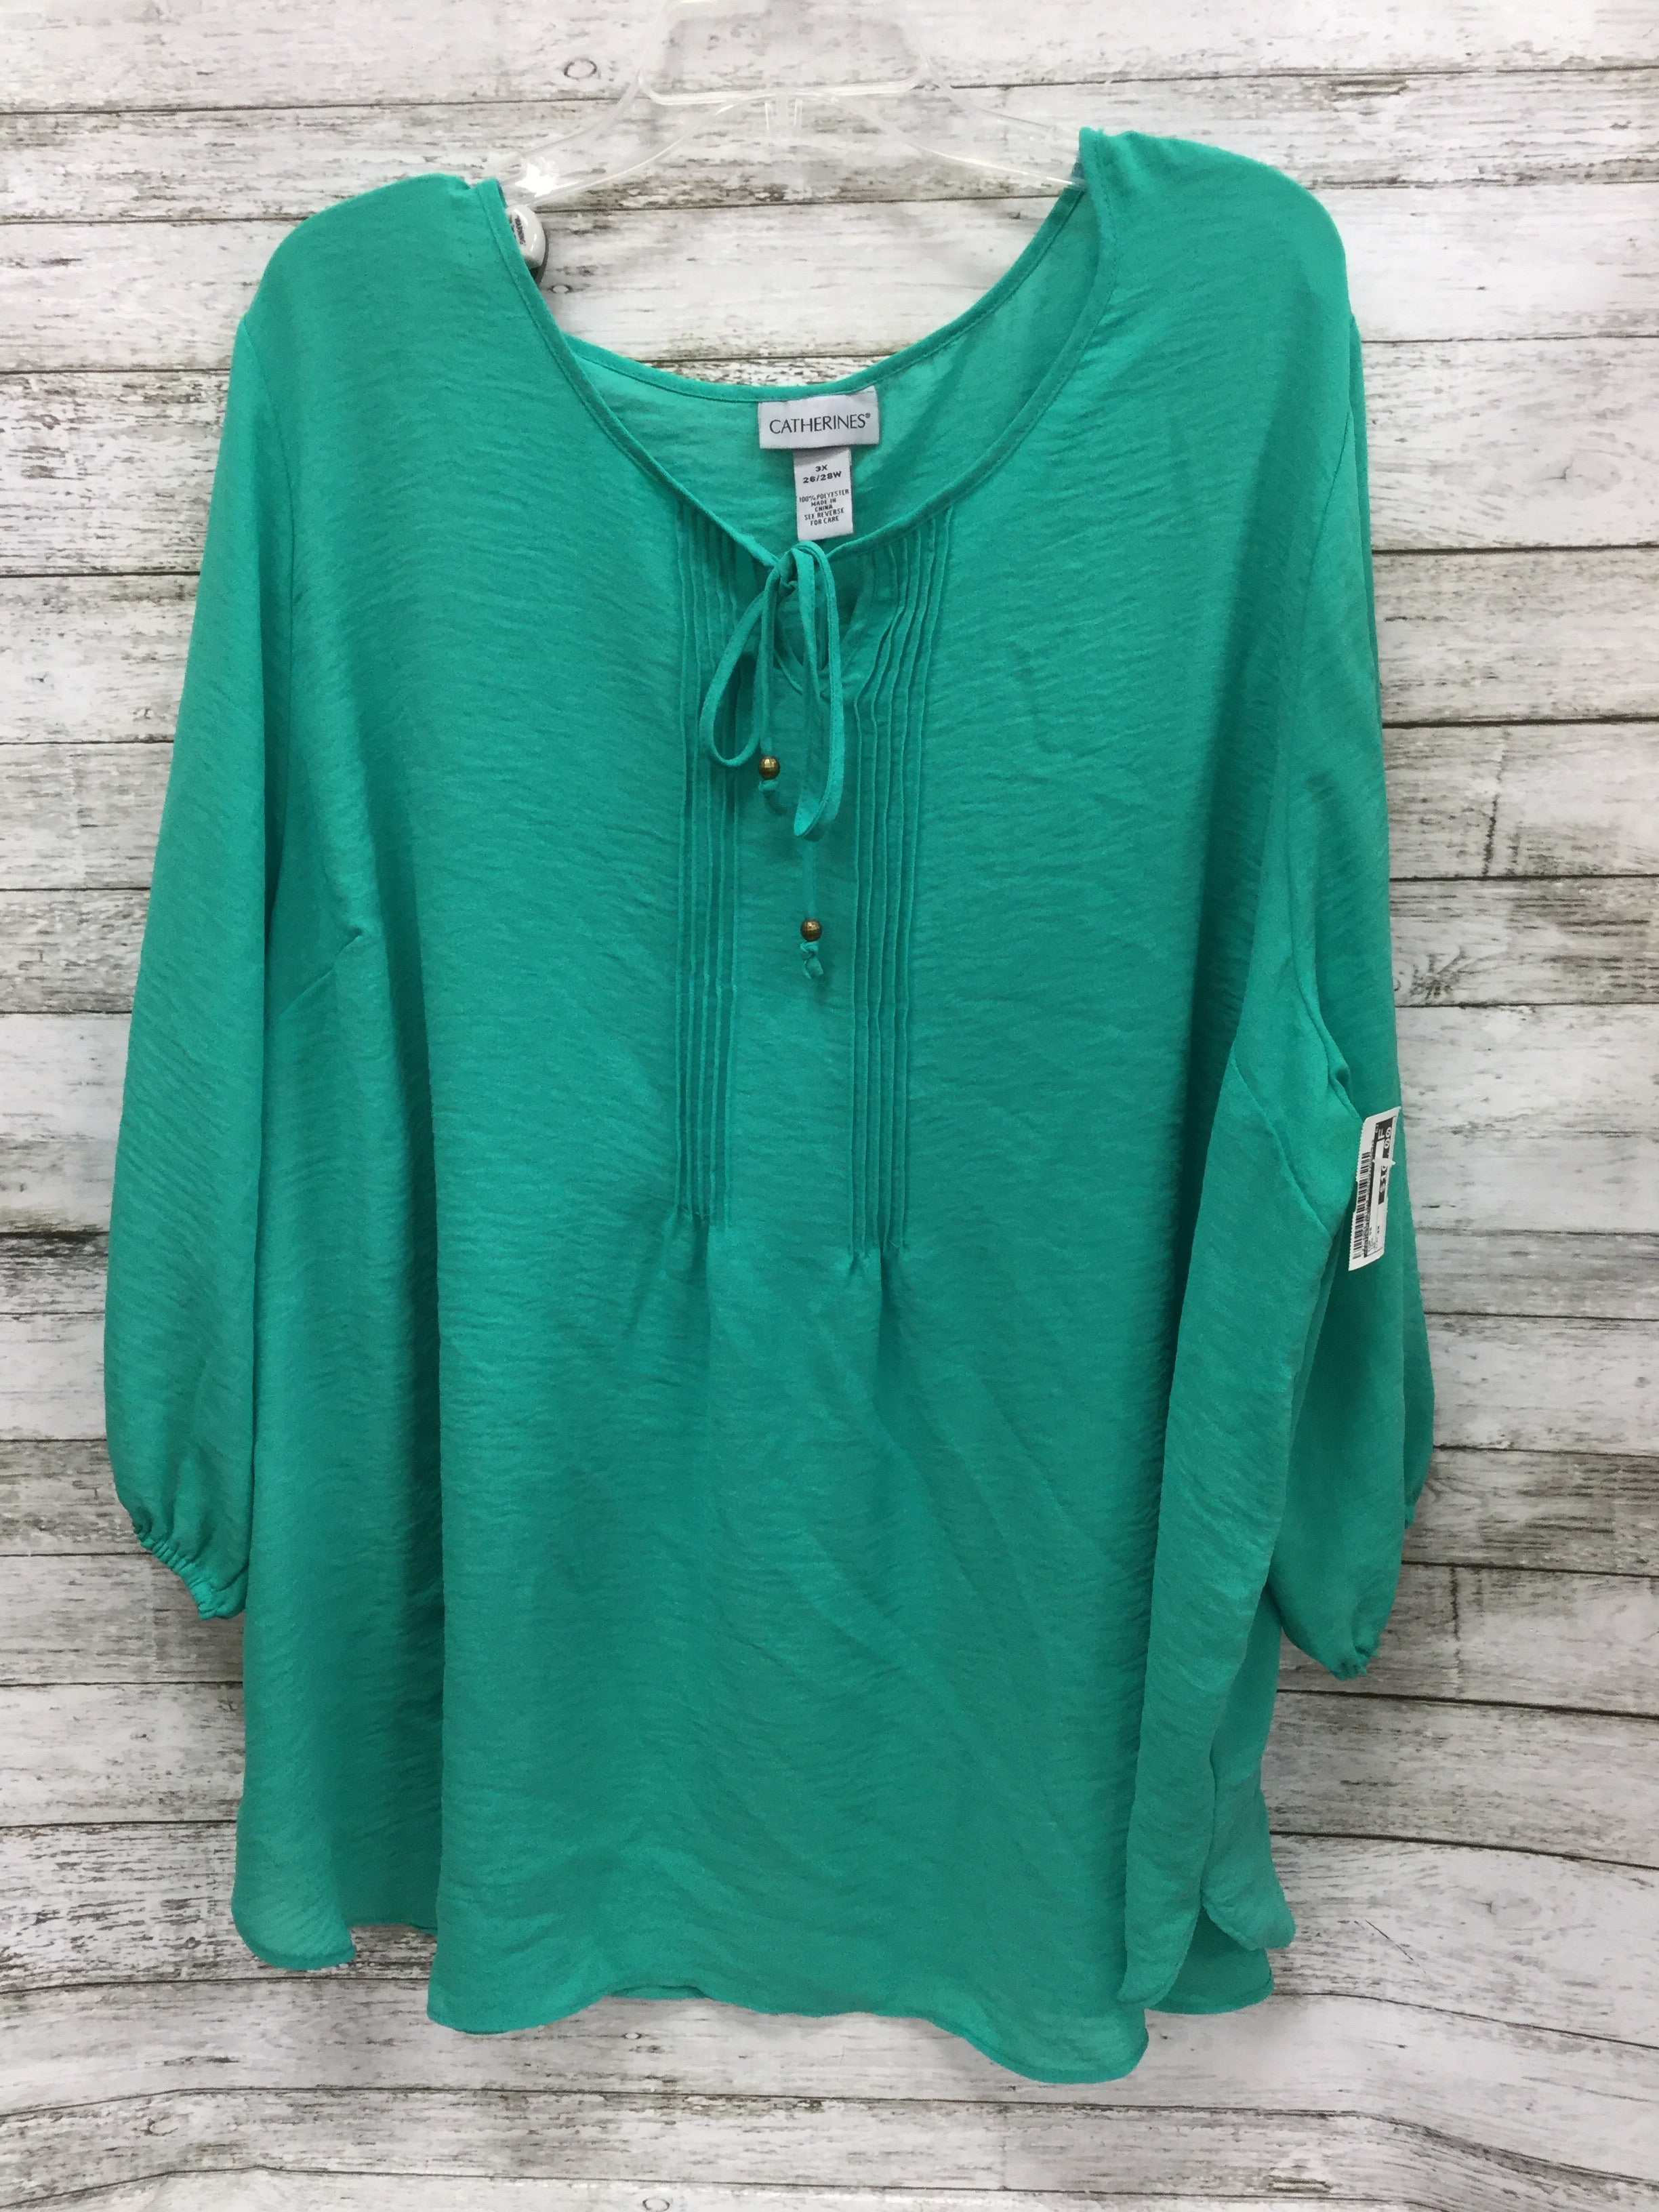 Primary Photo - BRAND: CATHERINES , STYLE: TOP SHORT SLEEVE , COLOR: TEAL , SIZE: 3X , SKU: 127-4954-3616